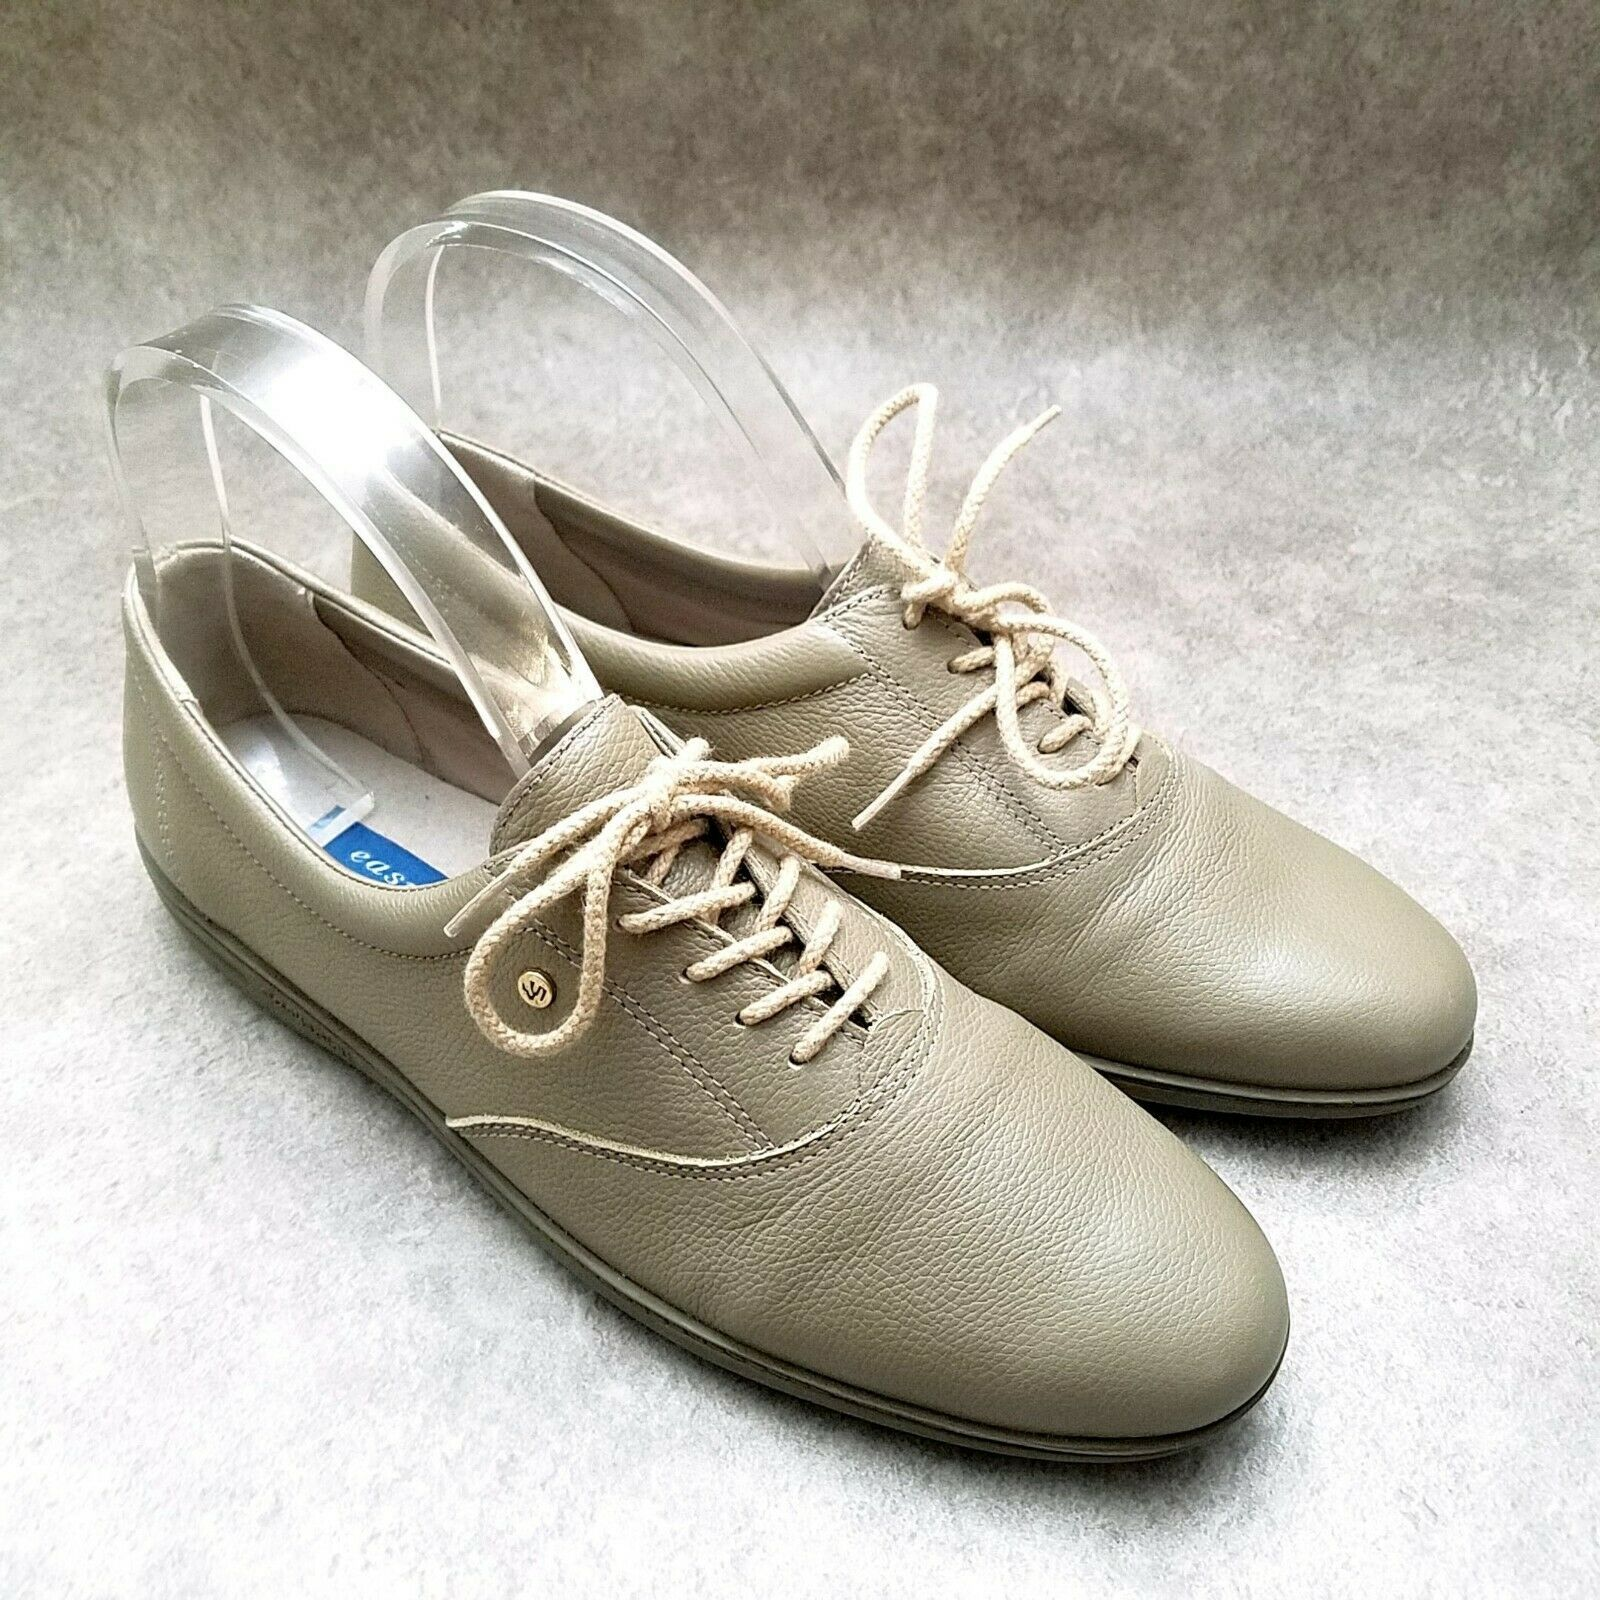 Easy Spirit Womens Motion  Sz 8.5 M Olive  Leather Lace Up Oxford Flats - $29.99